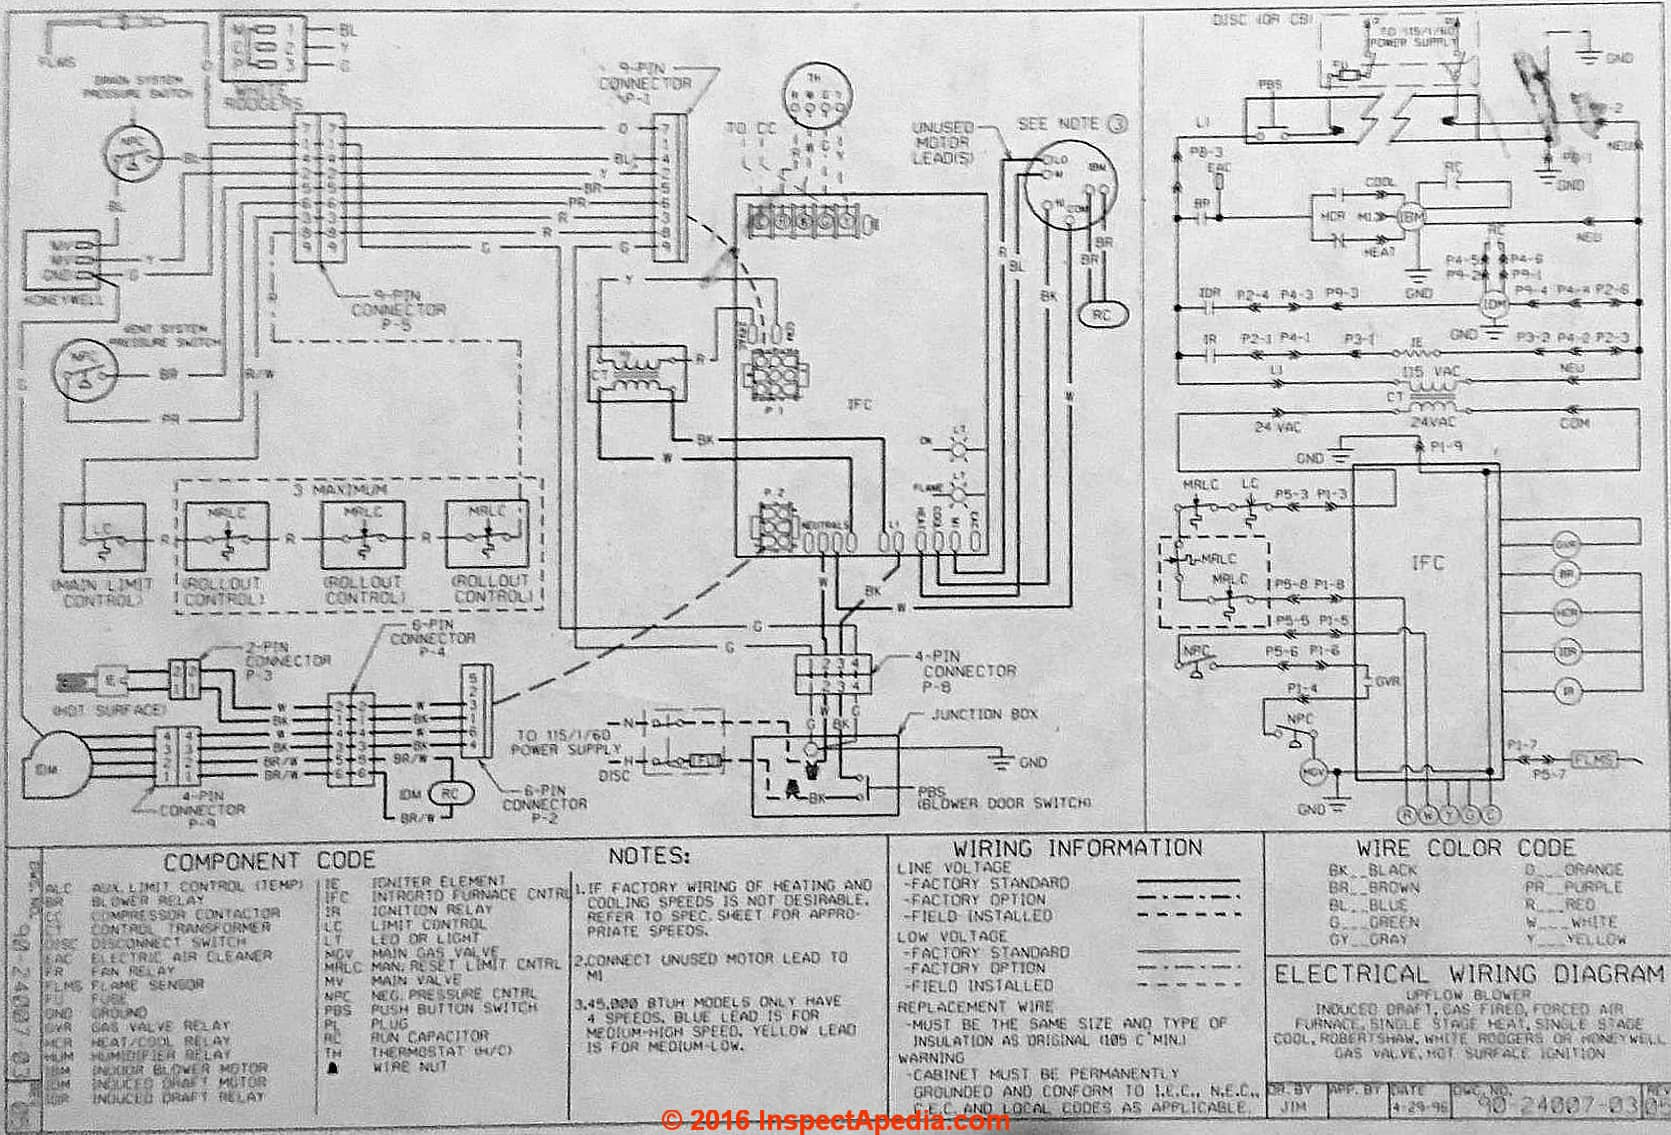 Rheem_AHU_Wiring_Diagram_IAP air conditioner heat pump faqs rheem heat pump wiring schematic at alyssarenee.co